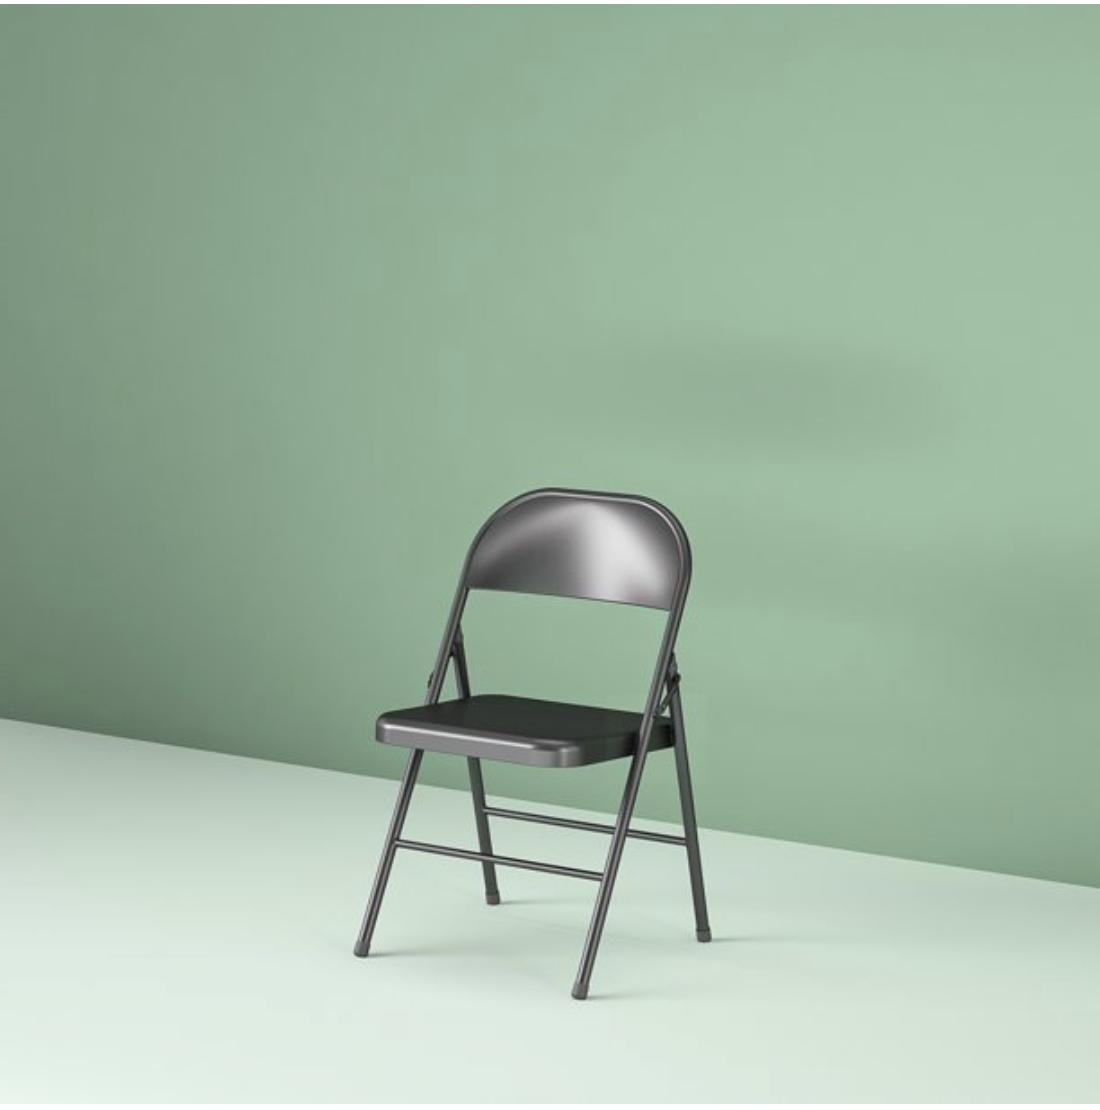 Steel Chair Black Rubber-Capped Feet